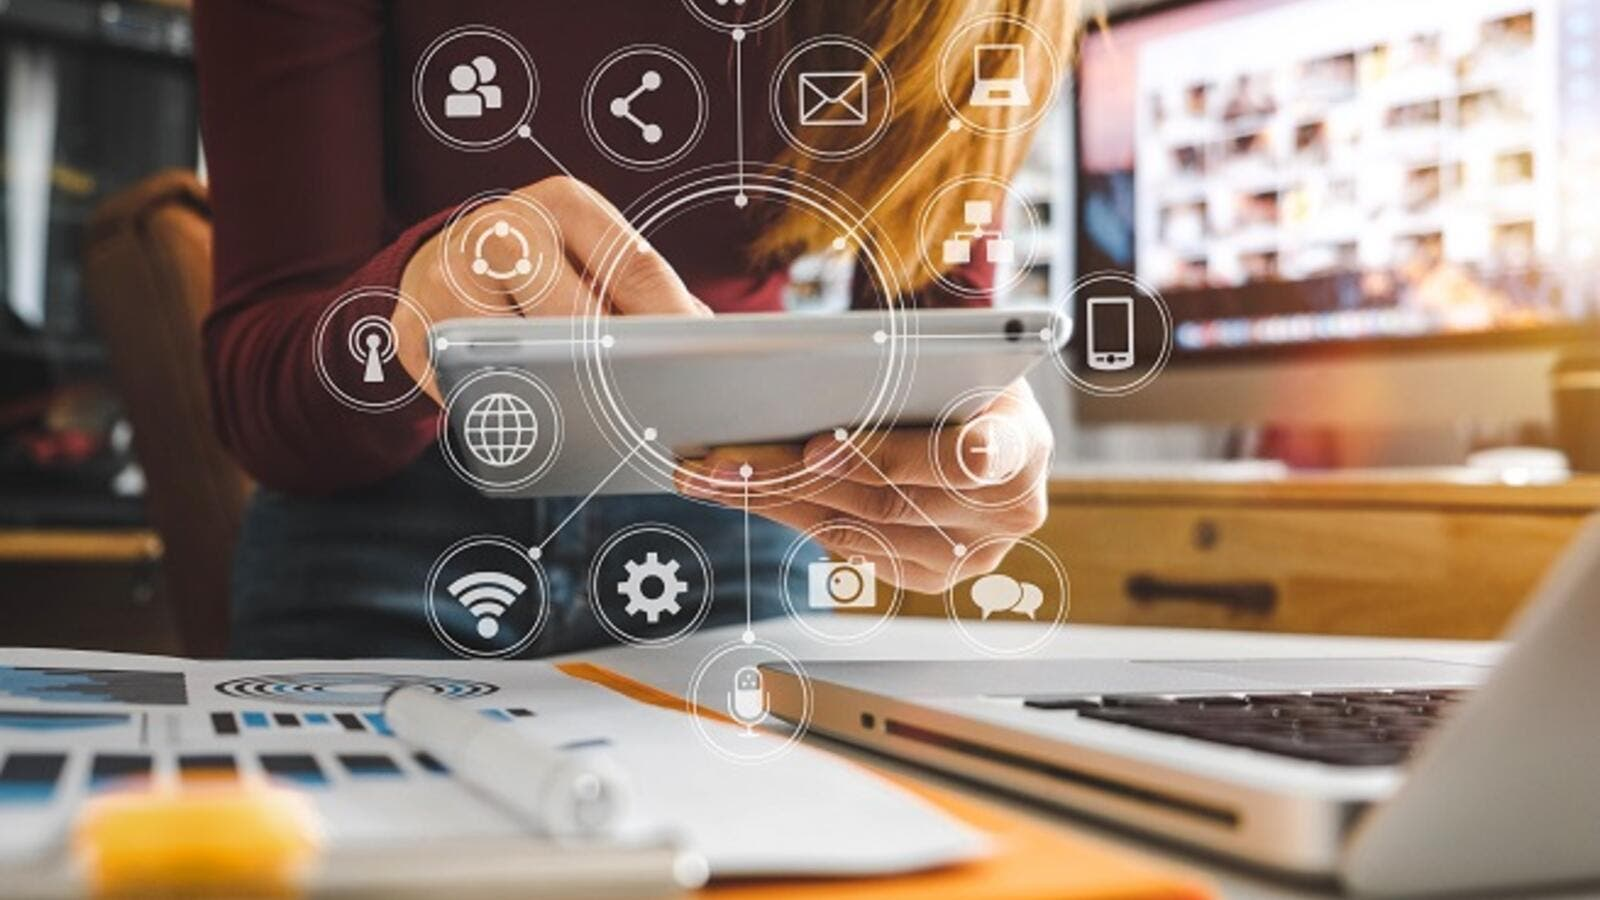 Artificial intelligence (AI) and chatbots rank among the top 10 trends in digital marketing this year. (Shutterstock)